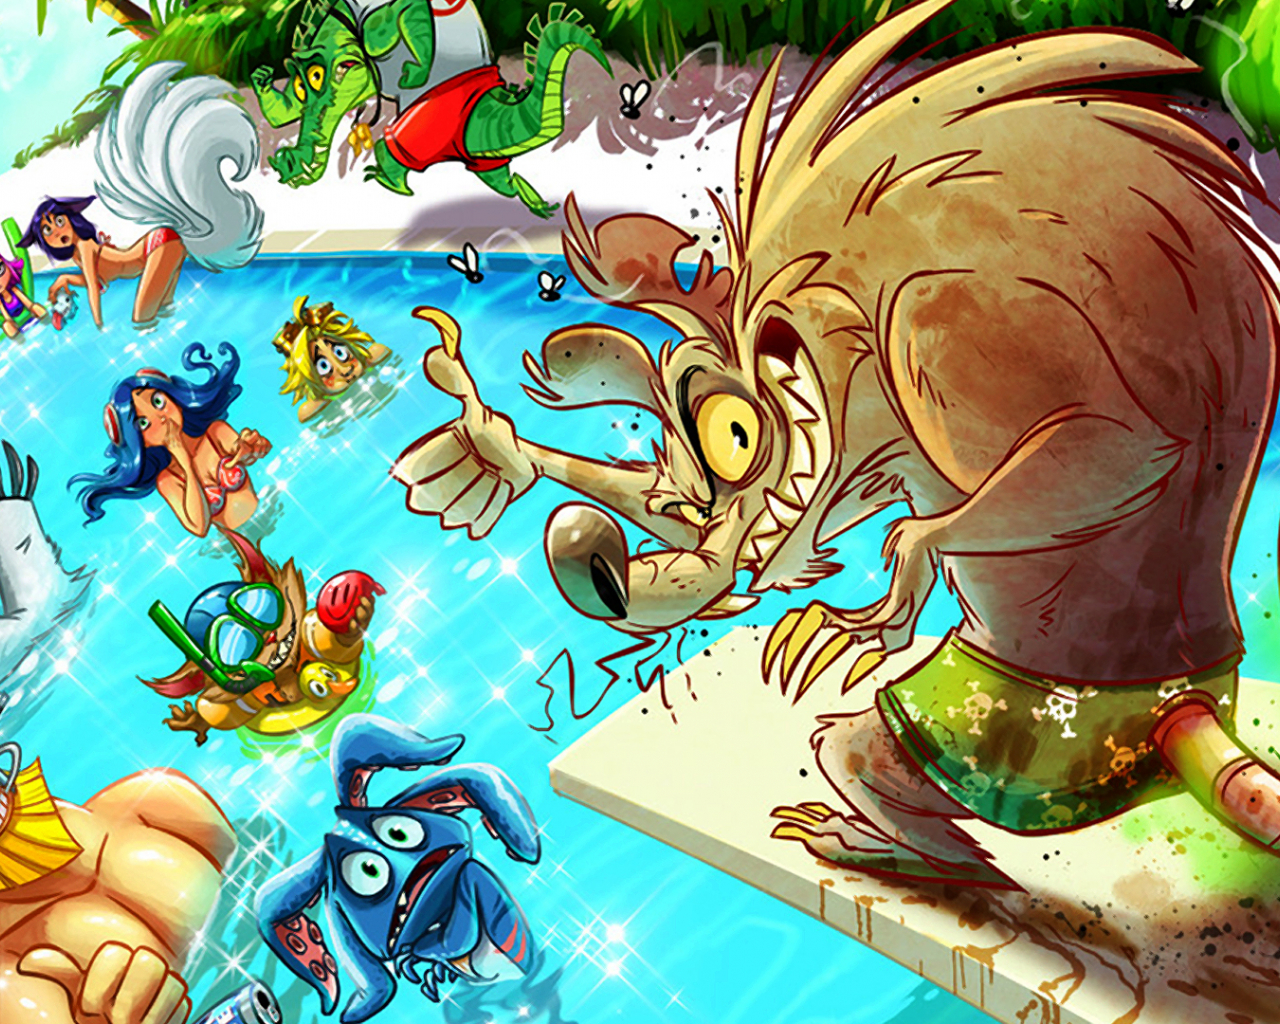 Free Download Pool Party Twitch Wallpaper Hd 1920x1080 For